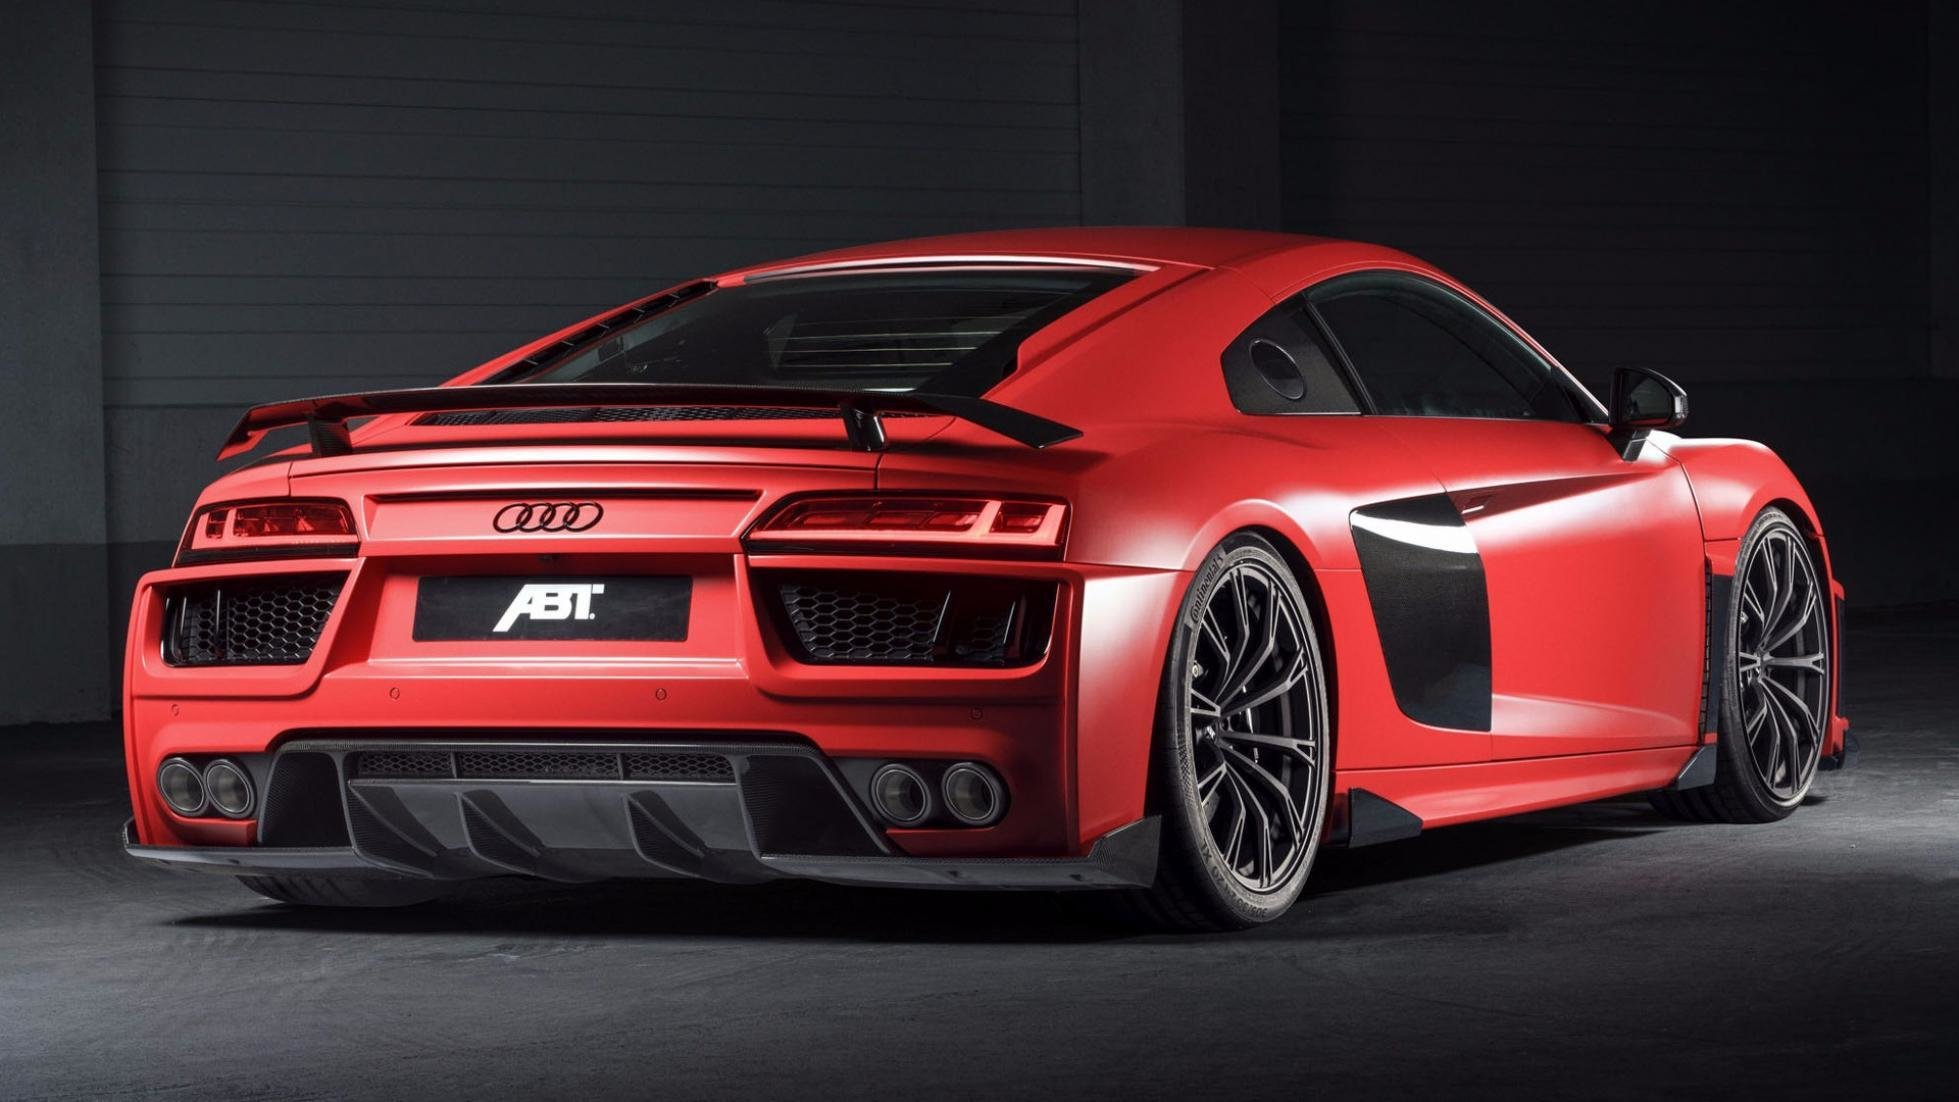 Latest Abt Audi R8 V10 Plus Tuned And Ready For Geneva With 630 Free Download